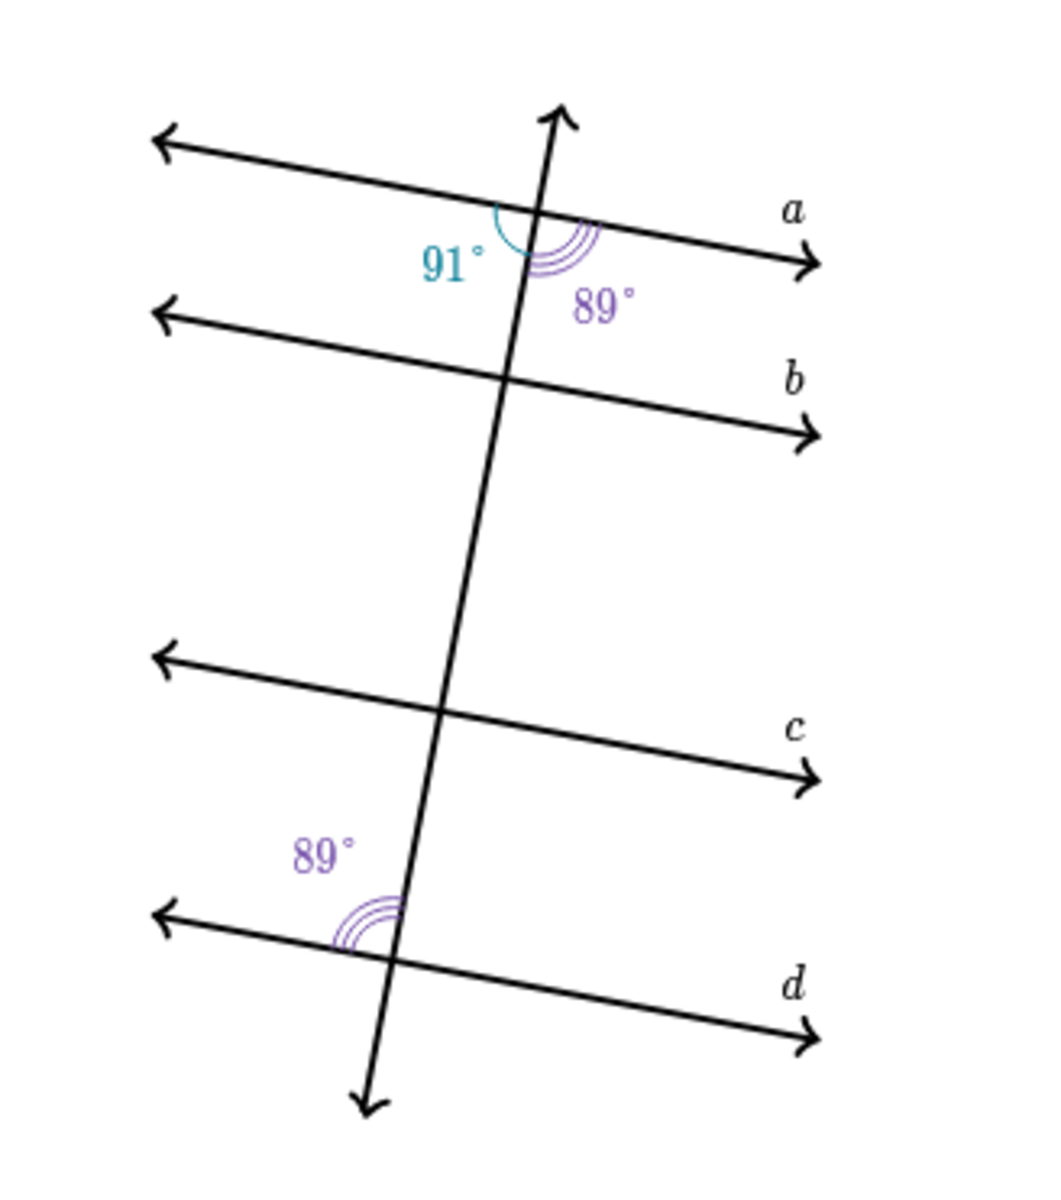 Lines a and d have congruent alternate interior angles, so they are parallel.